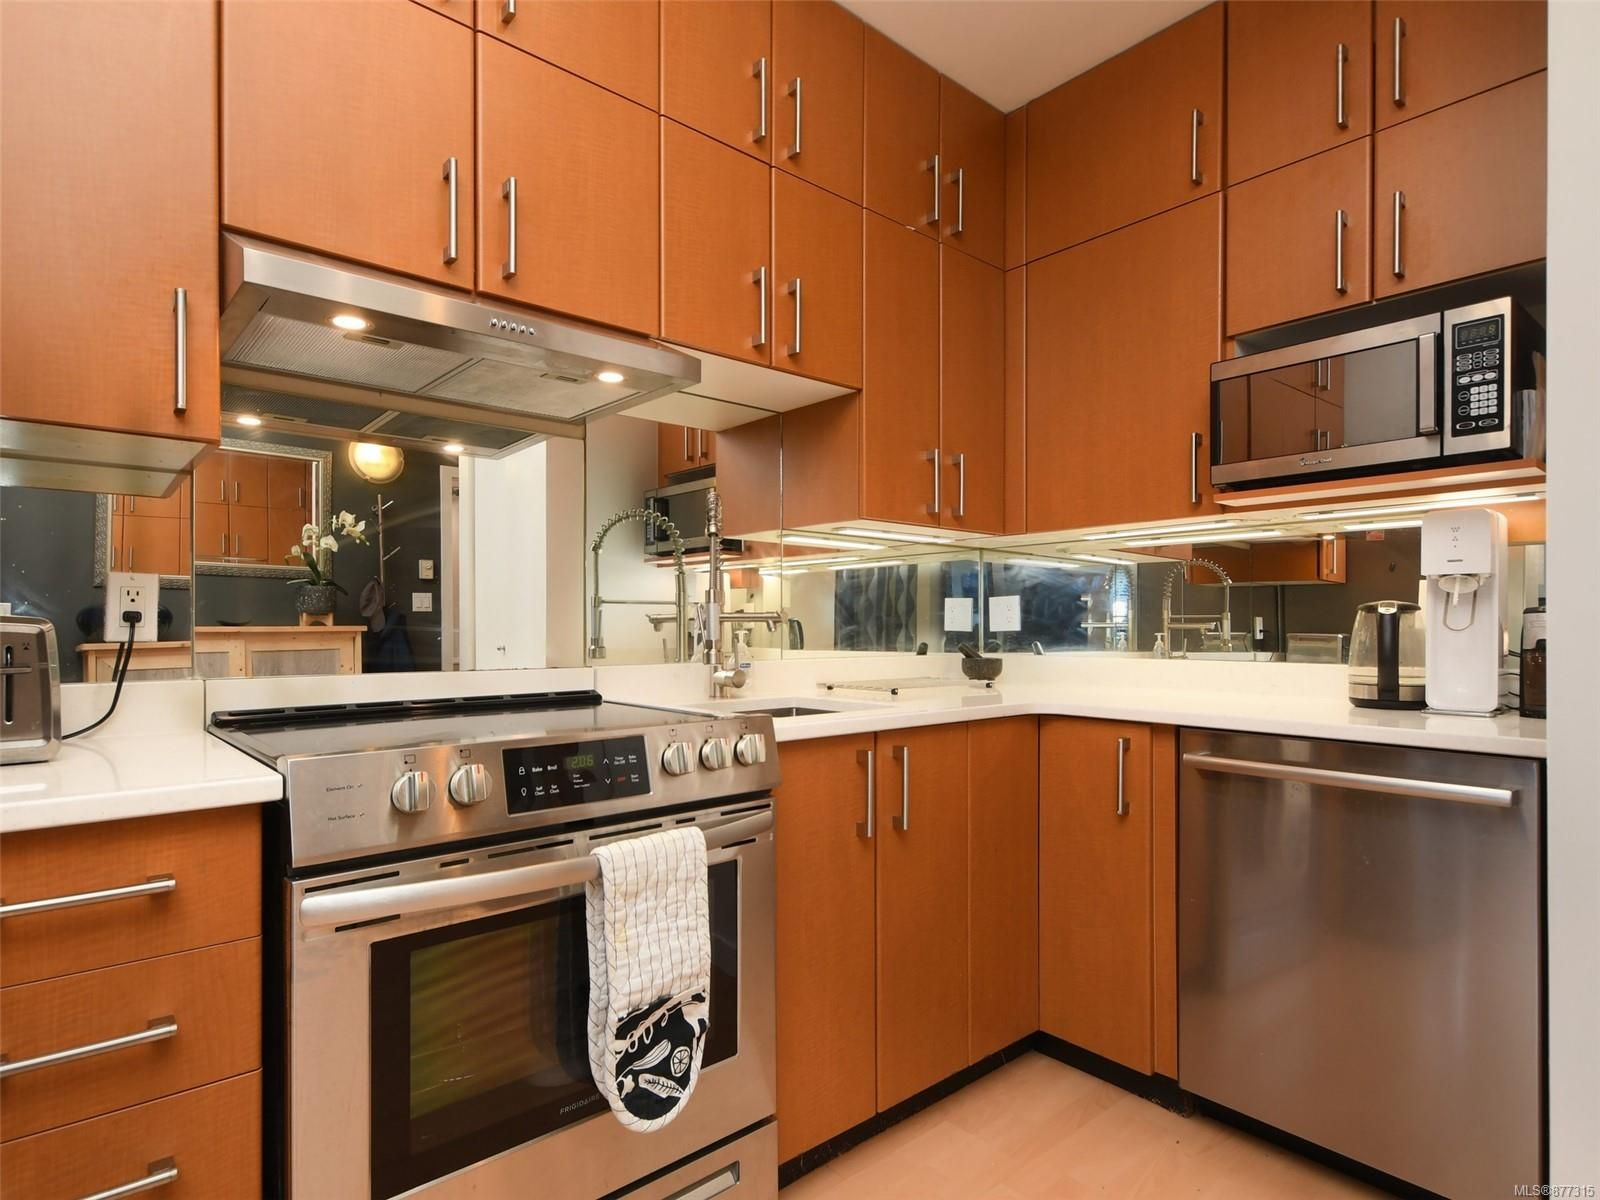 New Quart counters and high end Stainless Steel appliances with mirrored backspash make this kitchen modern and bright